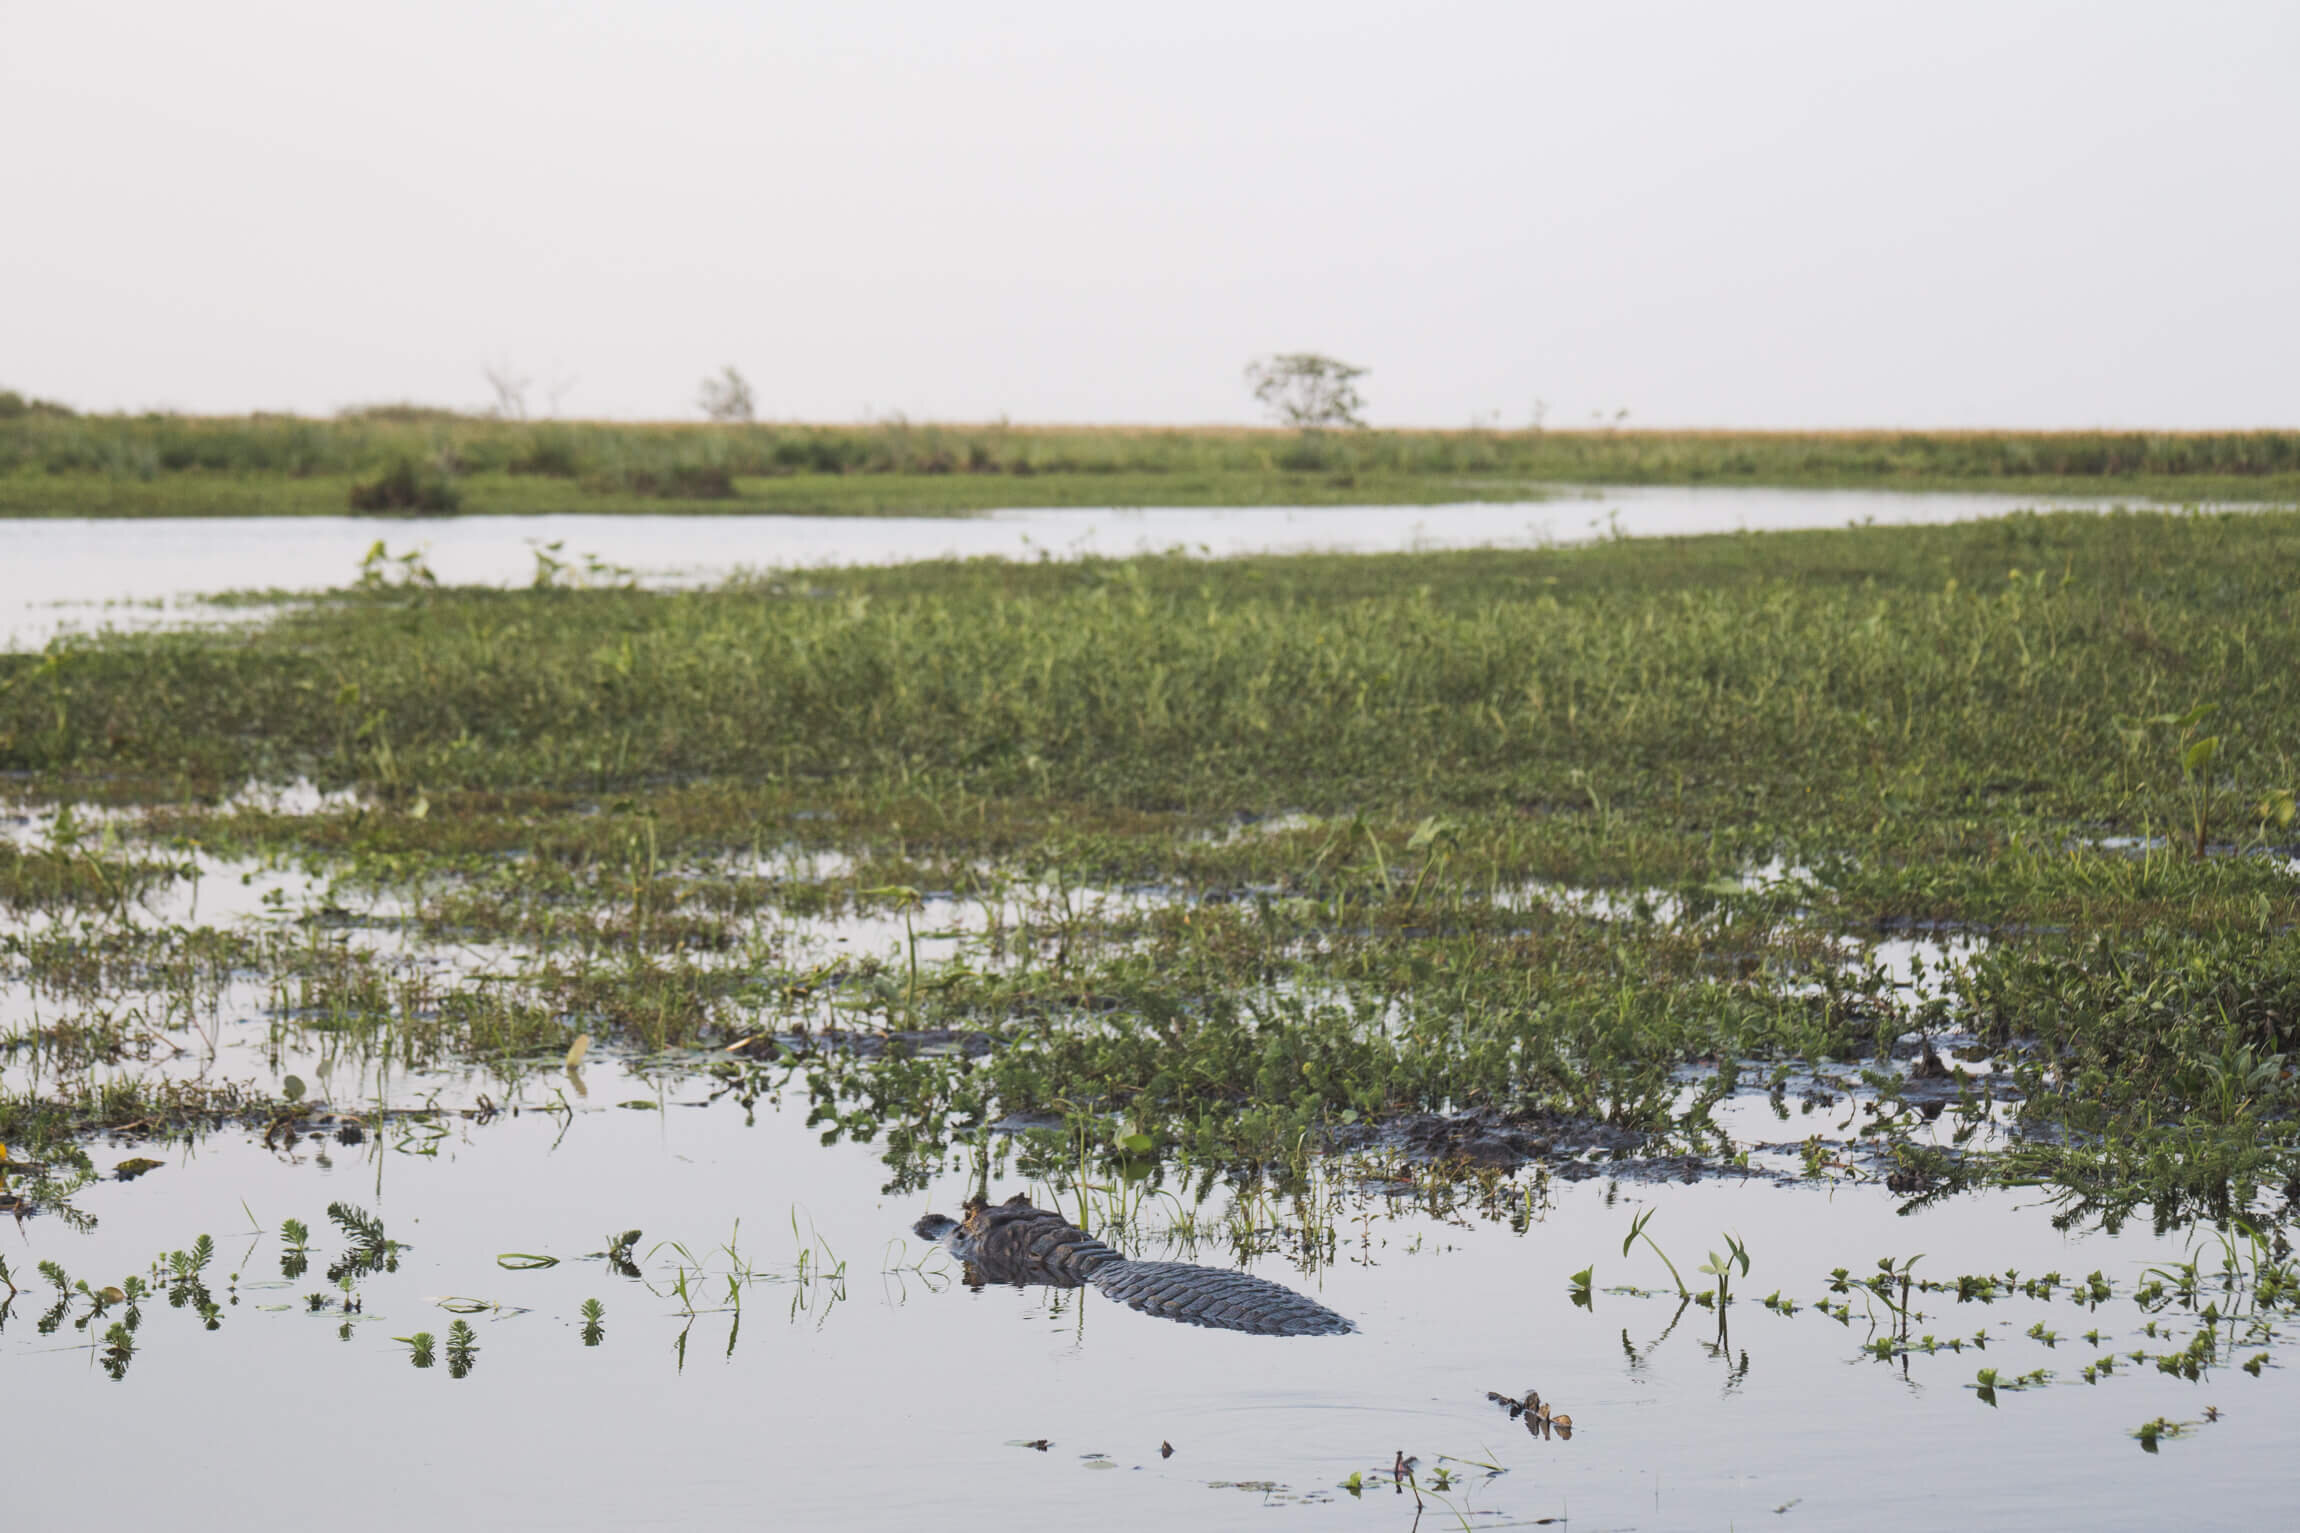 A small alligator is submerged in the water of the wetlands in Argentina